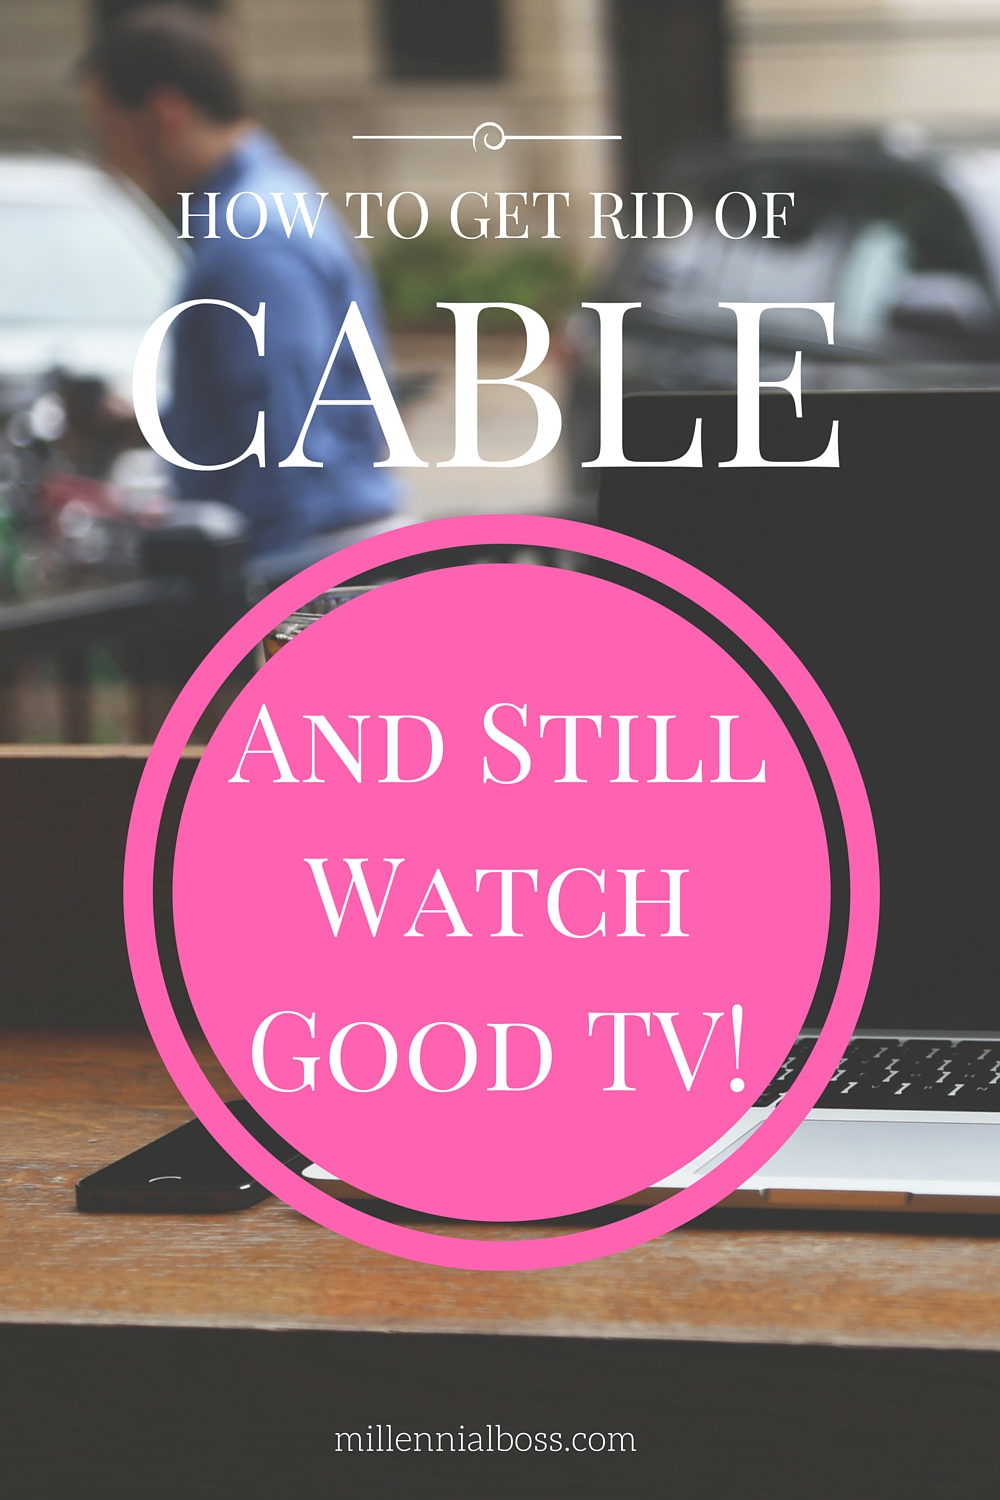 How to eliminate your cable bill #savingmoney #cablebill #slingtv #amazonfiretv #firetv #roku